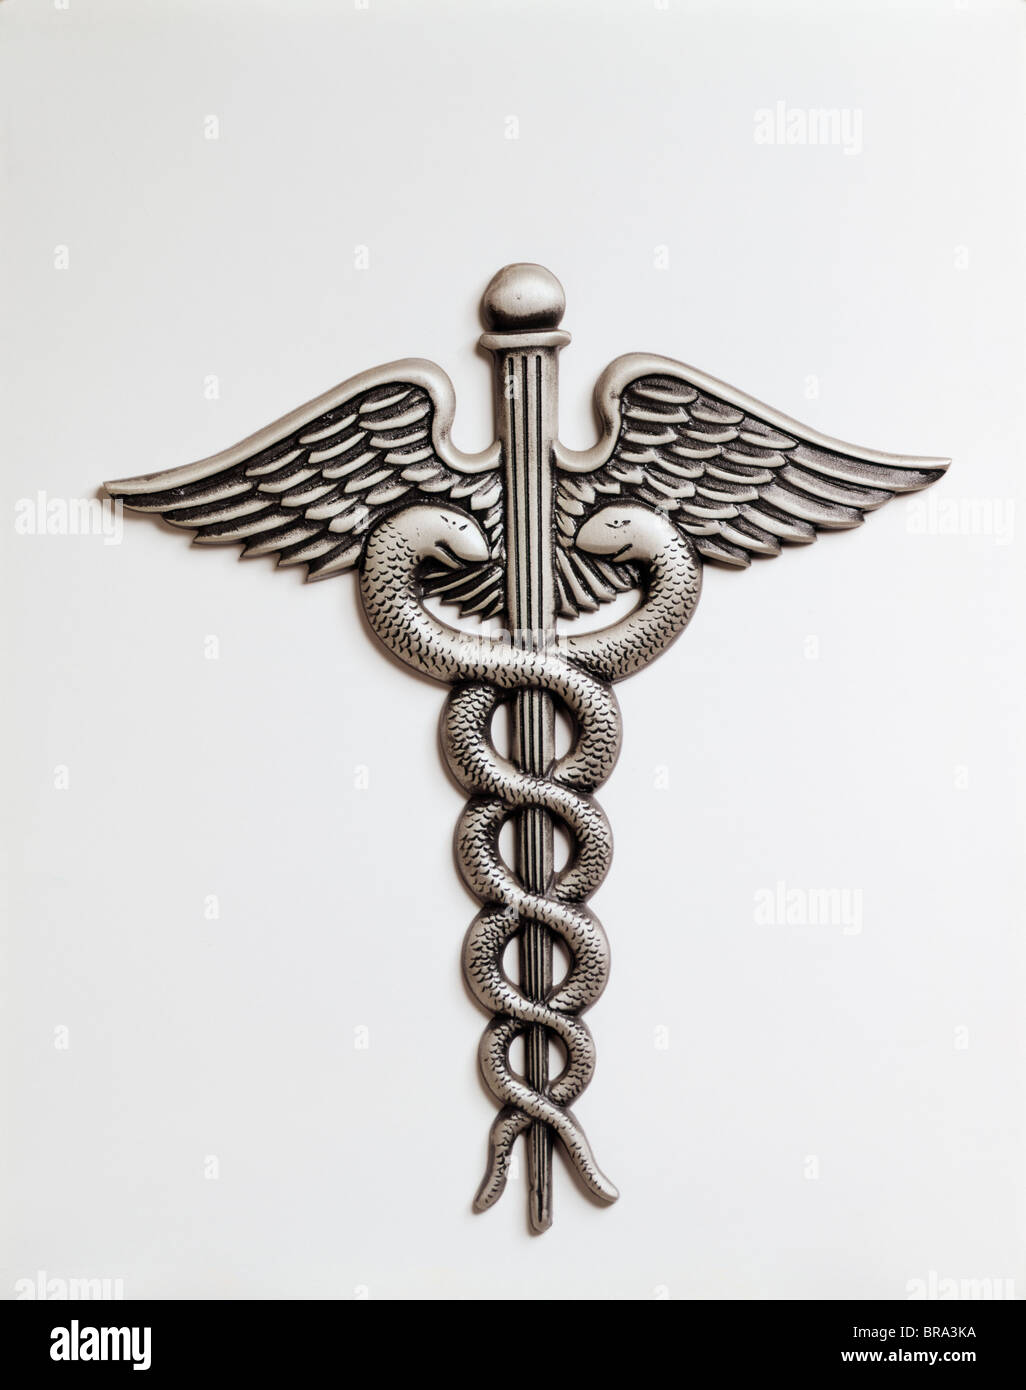 Caduceus an insignia of hermes winged staff twined with serpents caduceus an insignia of hermes winged staff twined with serpents now the symbol of the medical profession buycottarizona Image collections